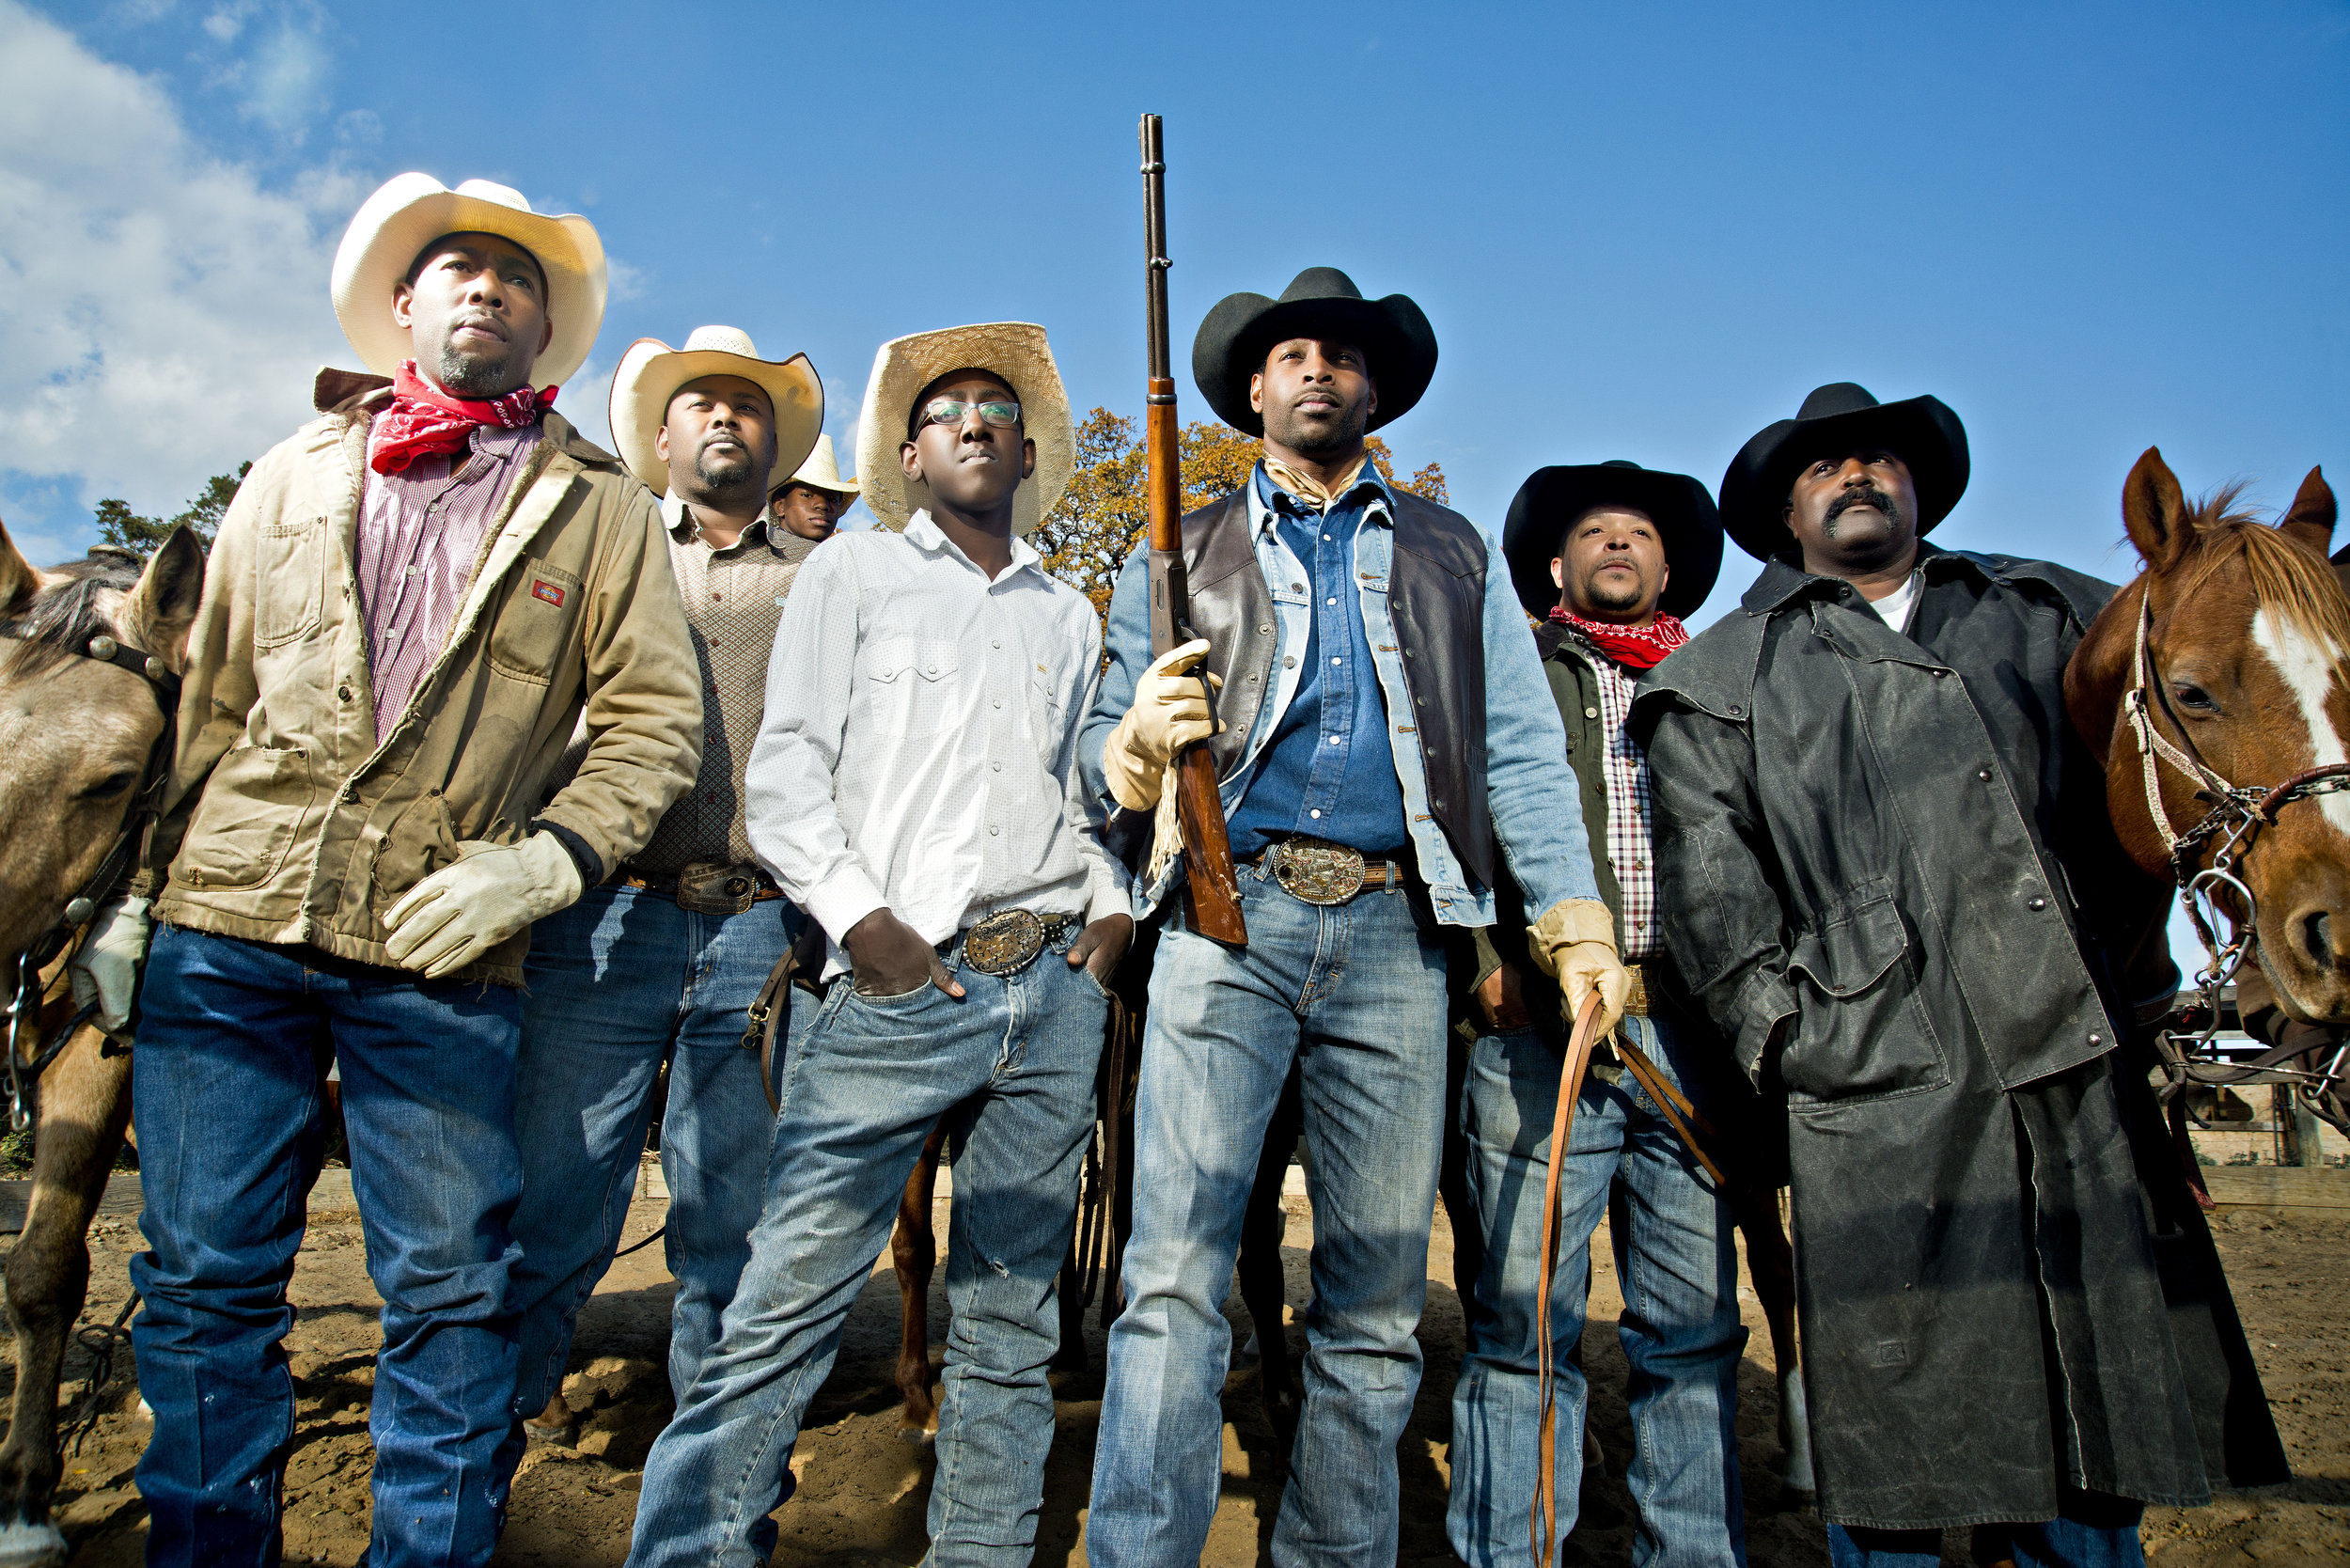 The Boot Hill Crew from South Dallas, Texas.